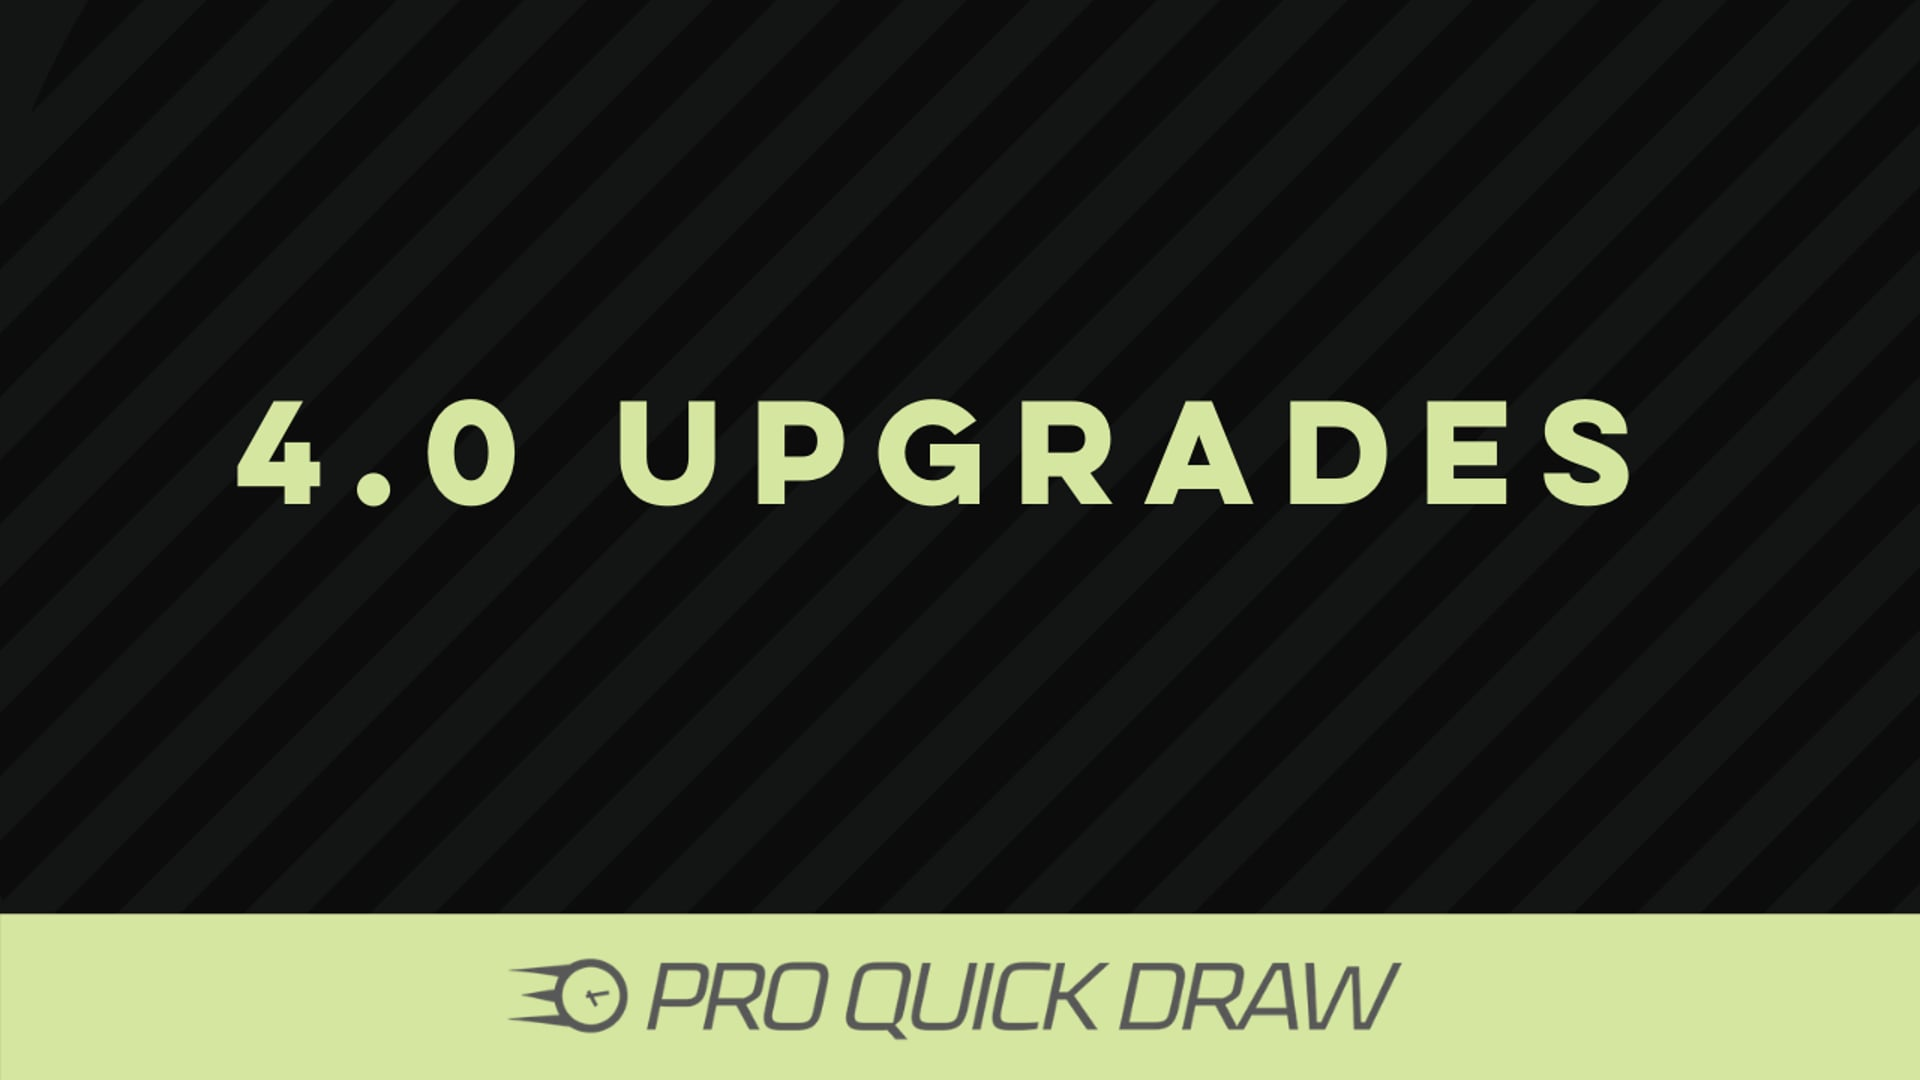 Pro Quick Draw 4.0 Upgrades [April 2021 Release]